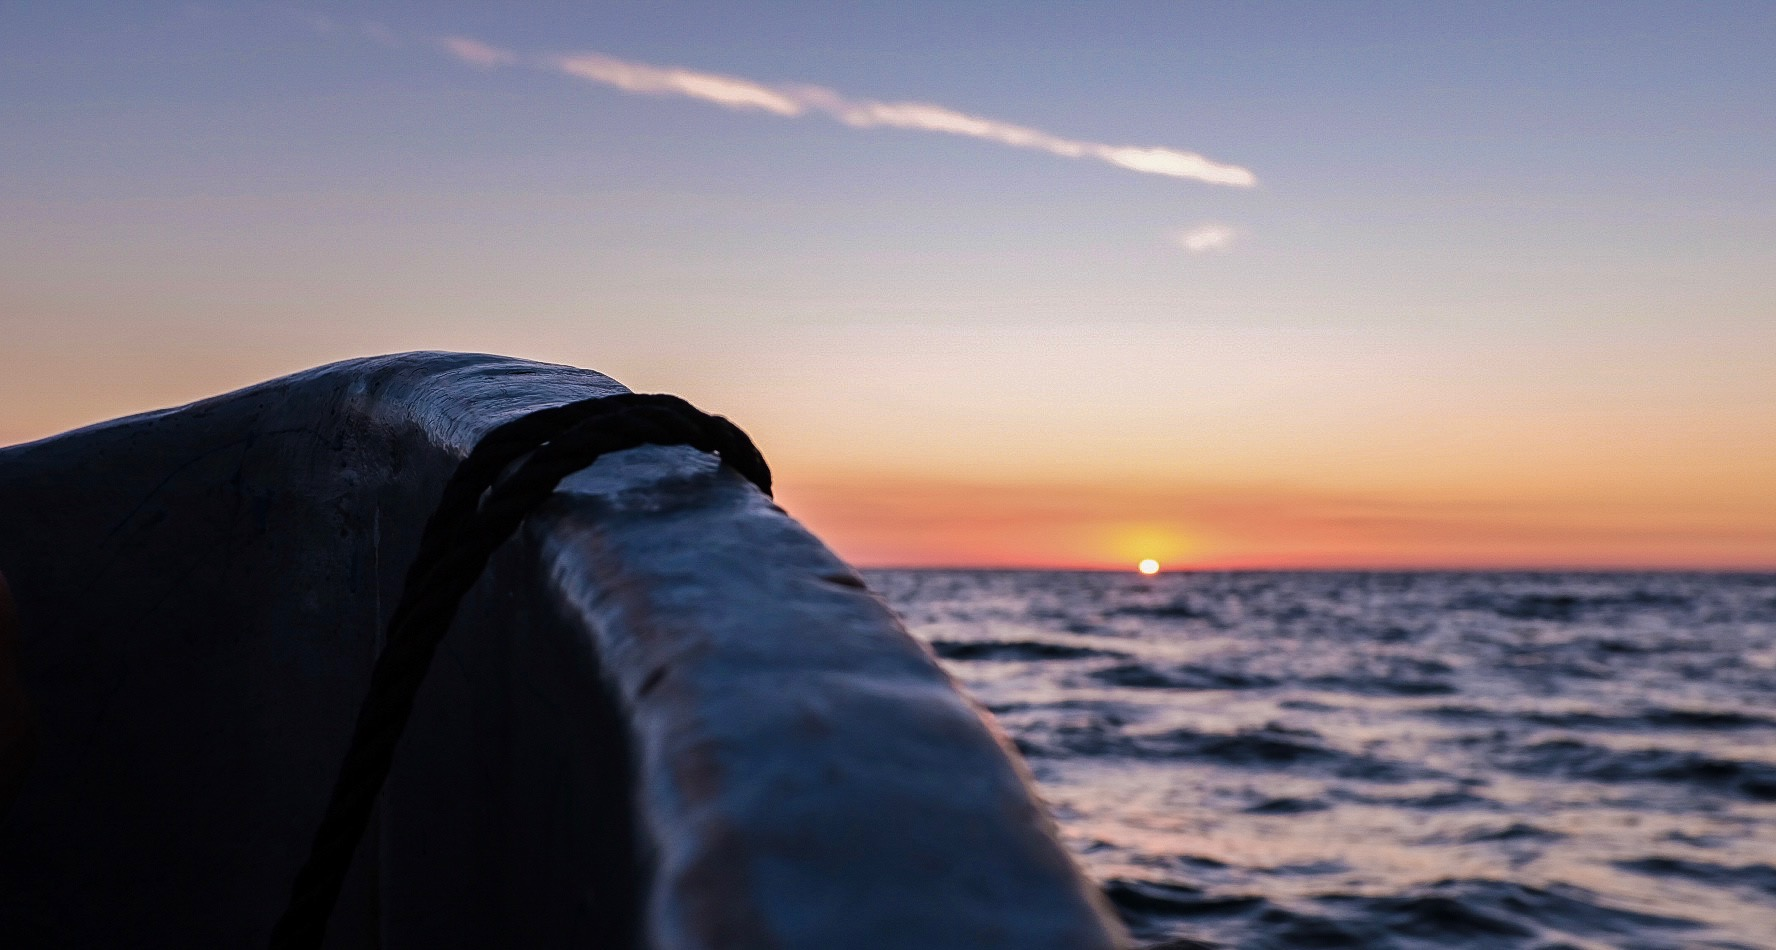 The setting sun, marking the start to a long night out at sea.